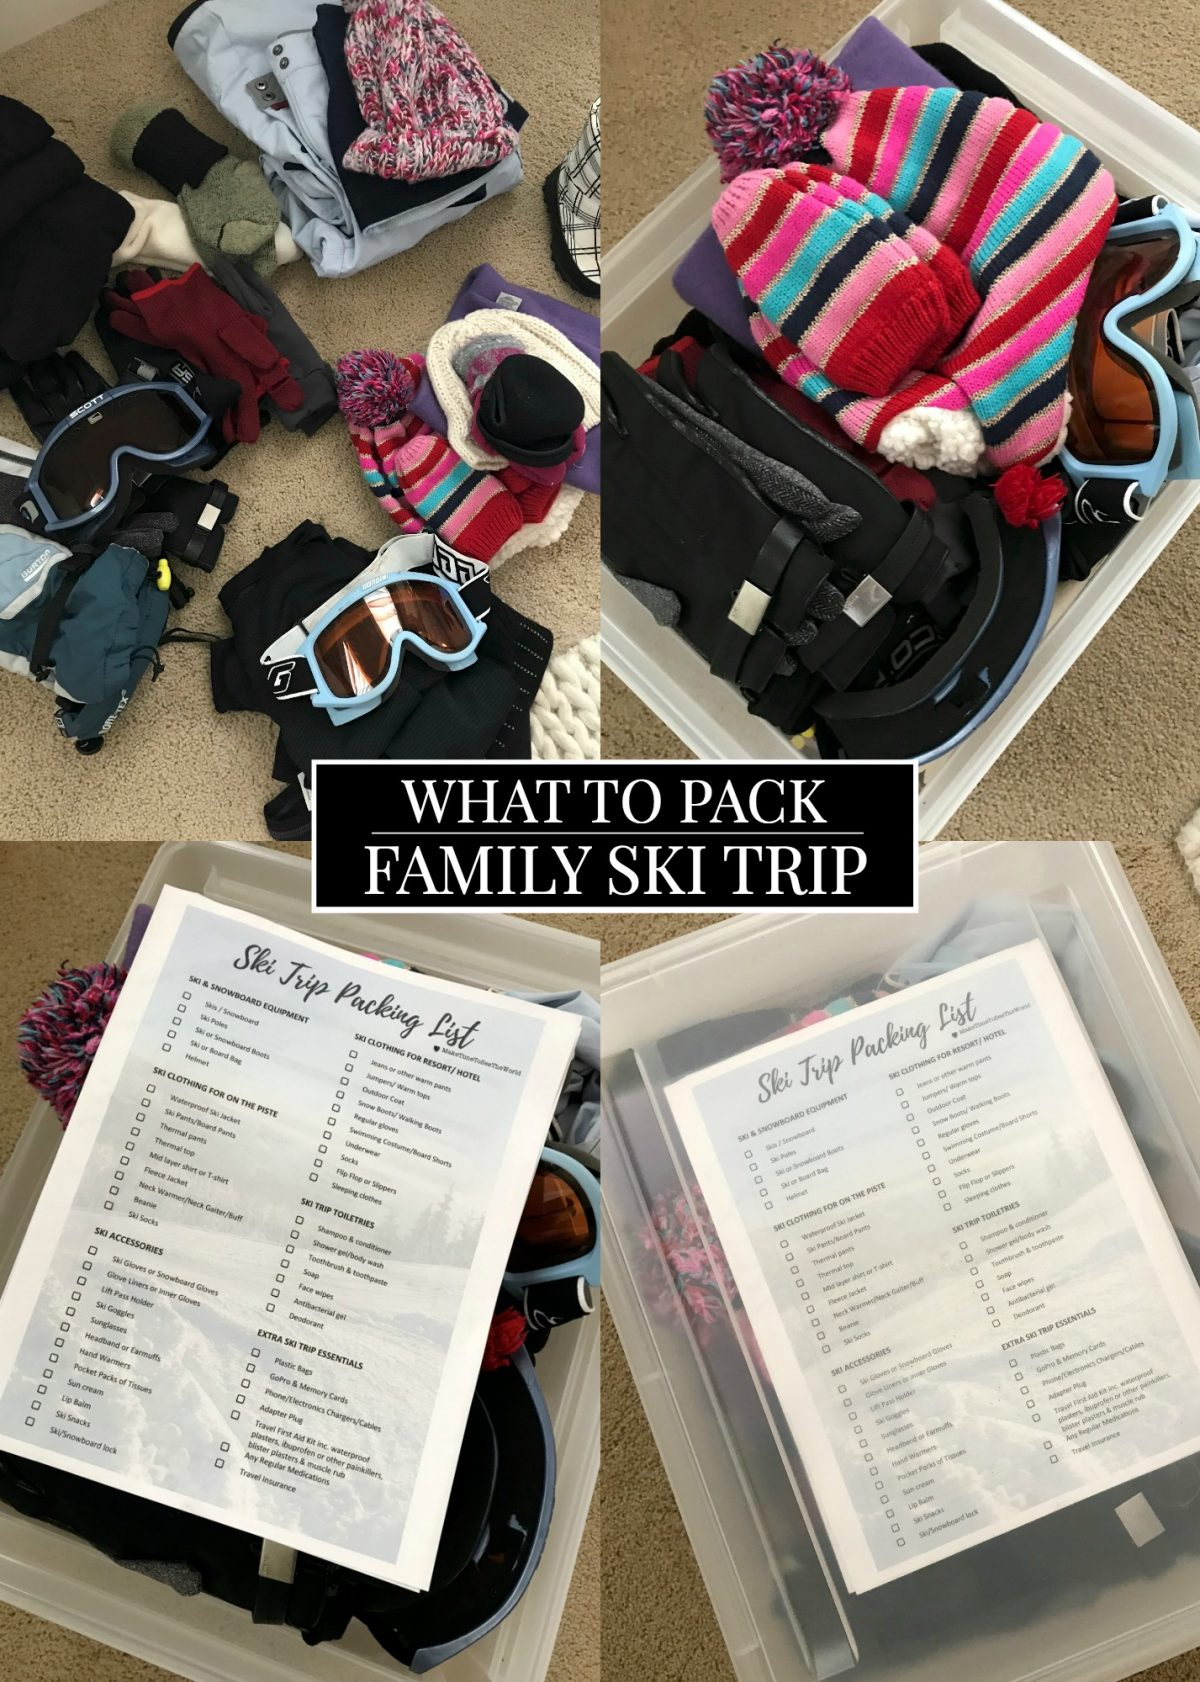 What to Pack Family Ski Trip